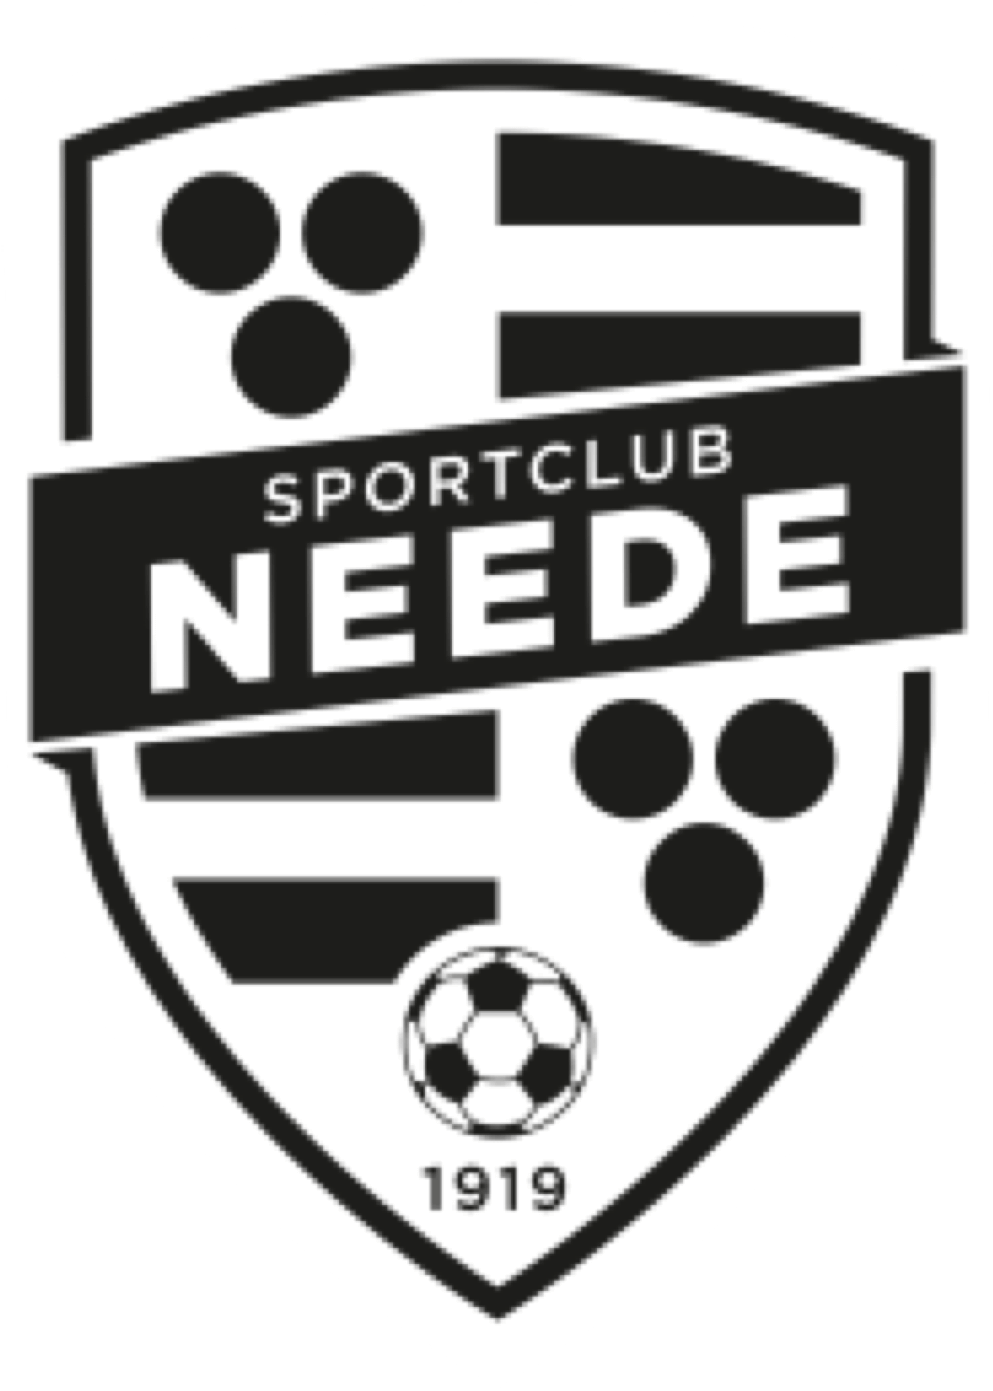 Sportclub_Neede